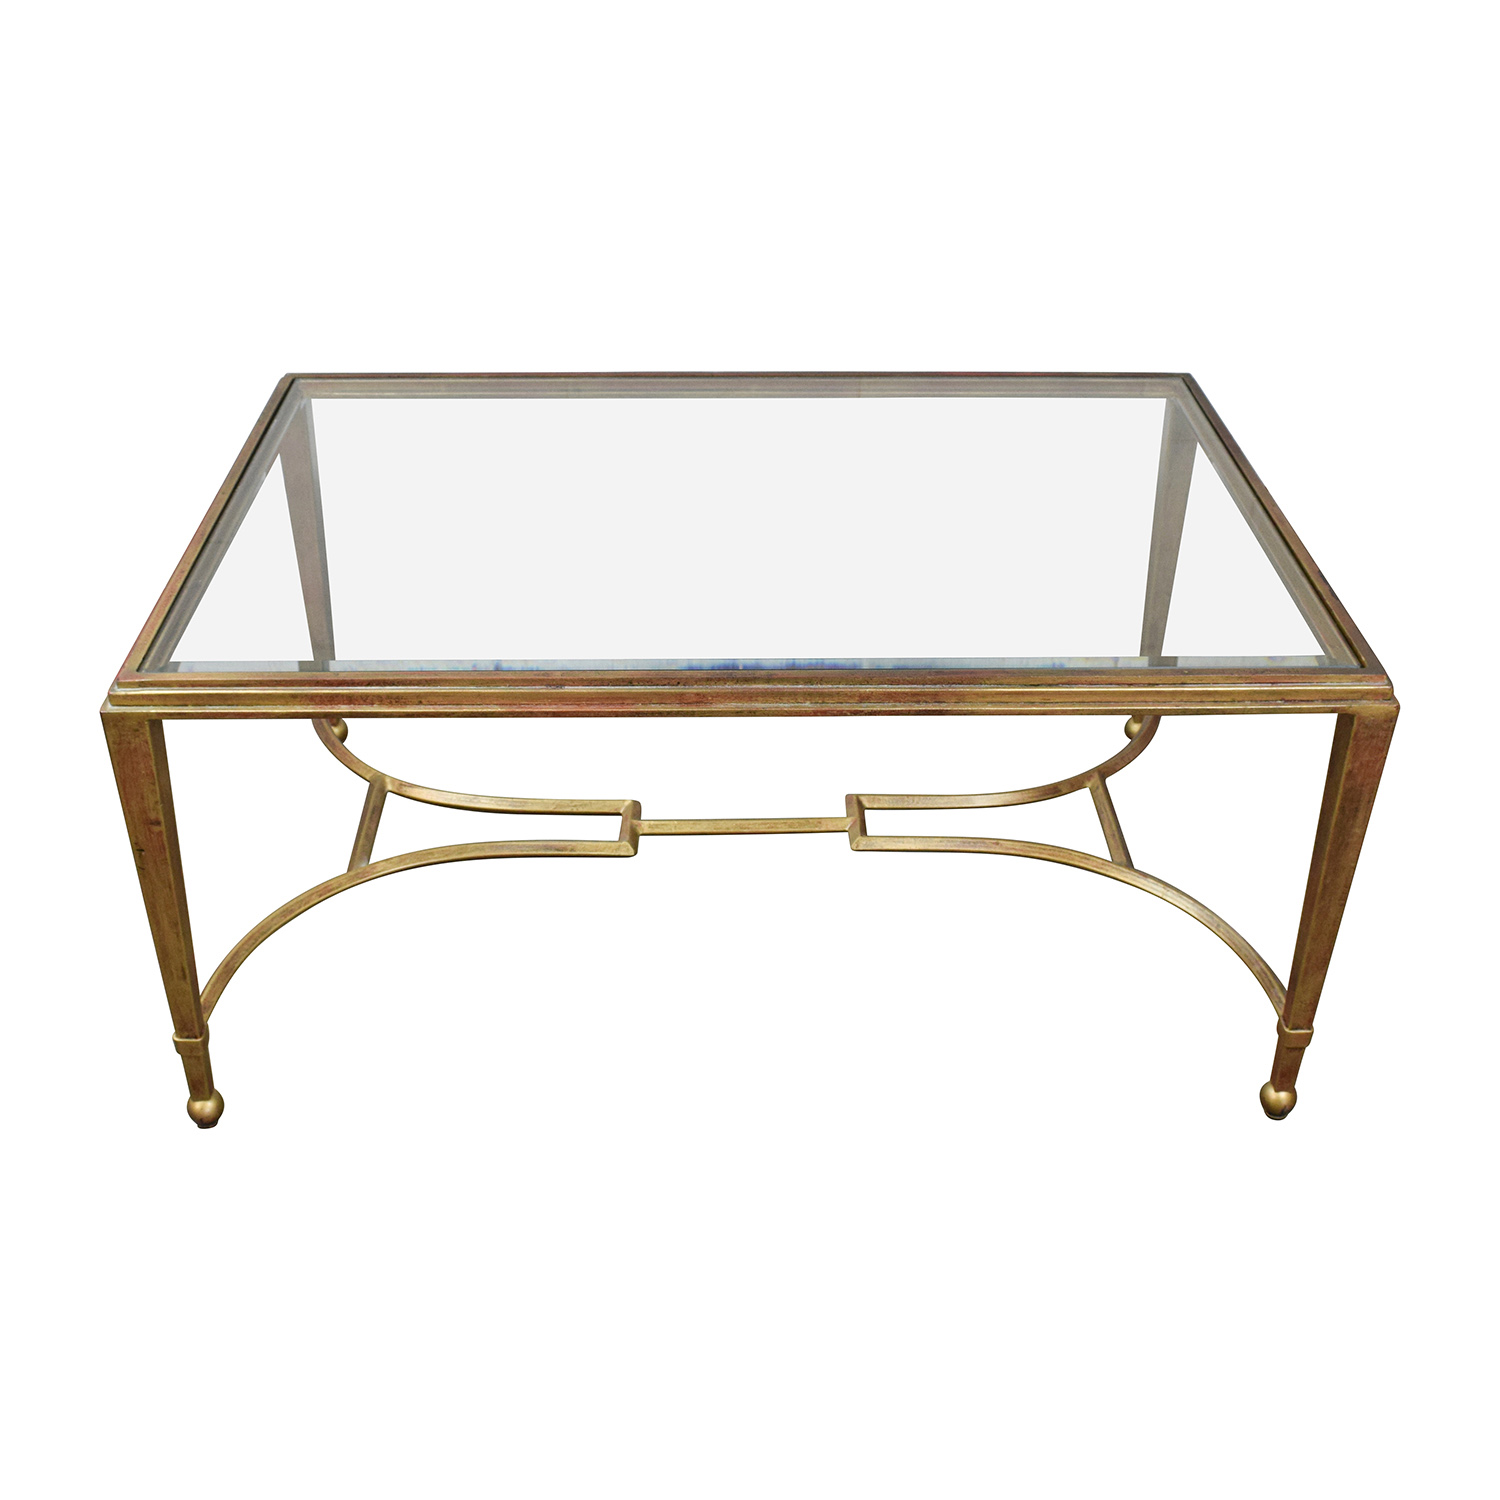 buy Safavieh Couture Safavieh Couture Abelard Coffee Table online